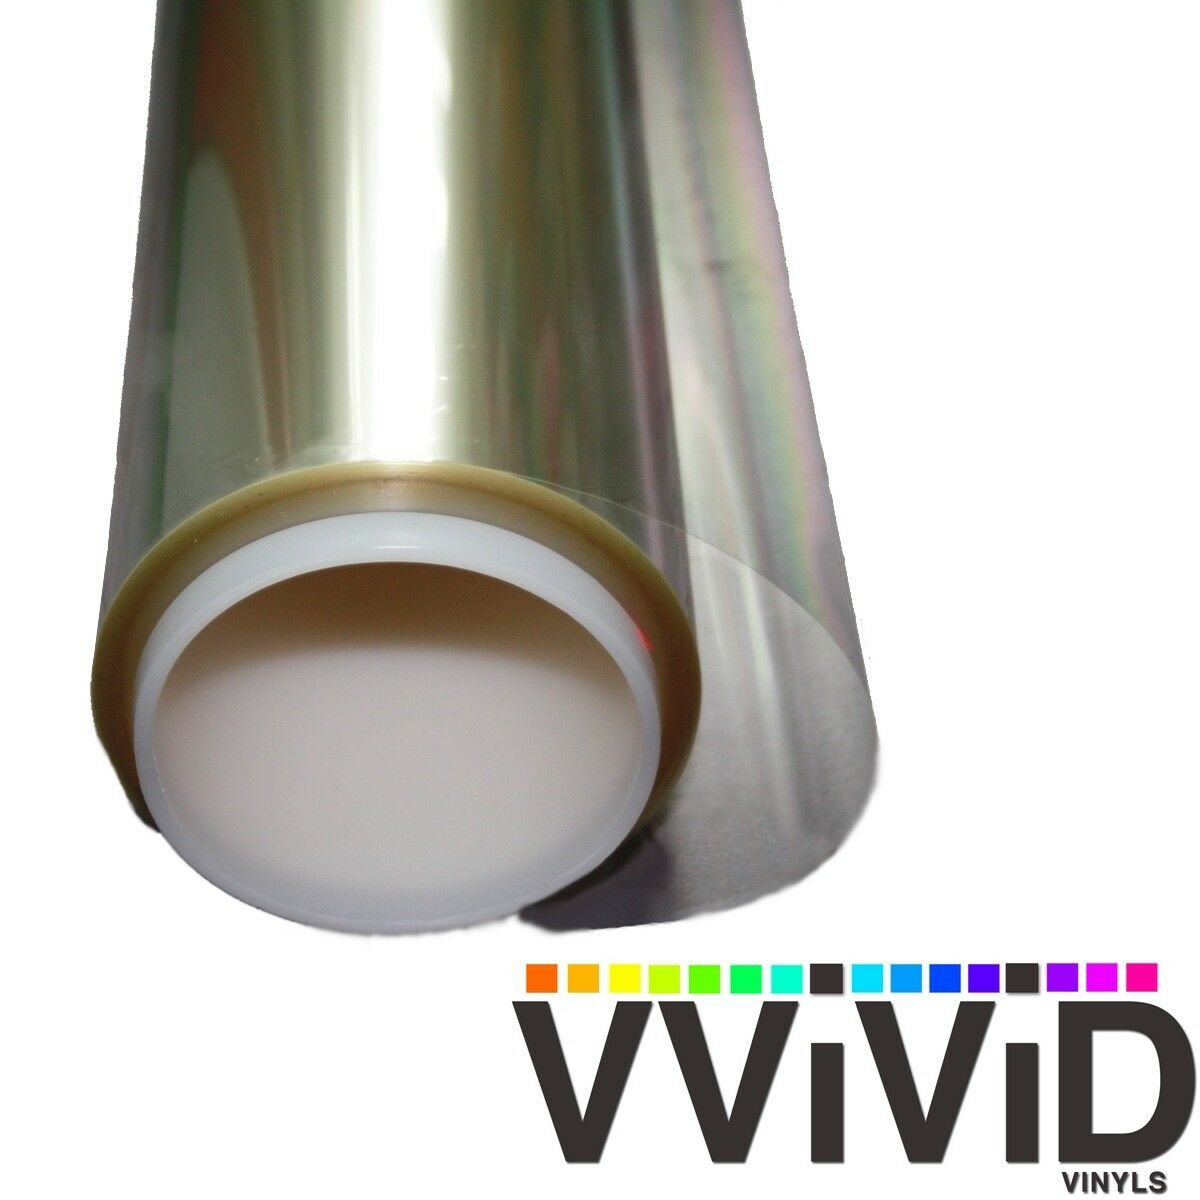 Vvivid 5ft X 20ft 4MIL Claro Seguridad Window Film